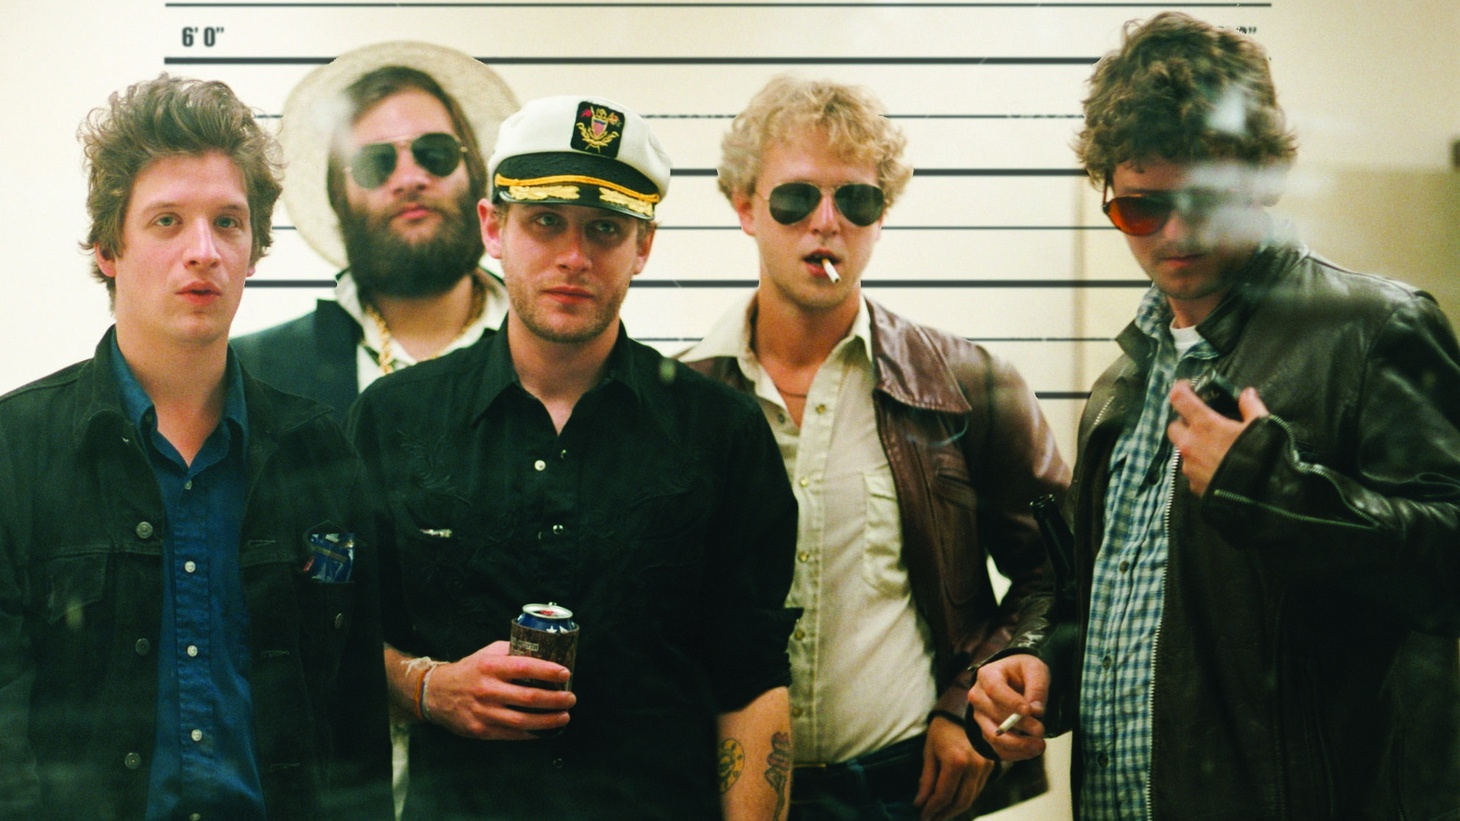 Deer Tick wanted their most recent album, Divine Providence, to stay true to their live sound so they cut loose for a carefree, raw and loud recording...